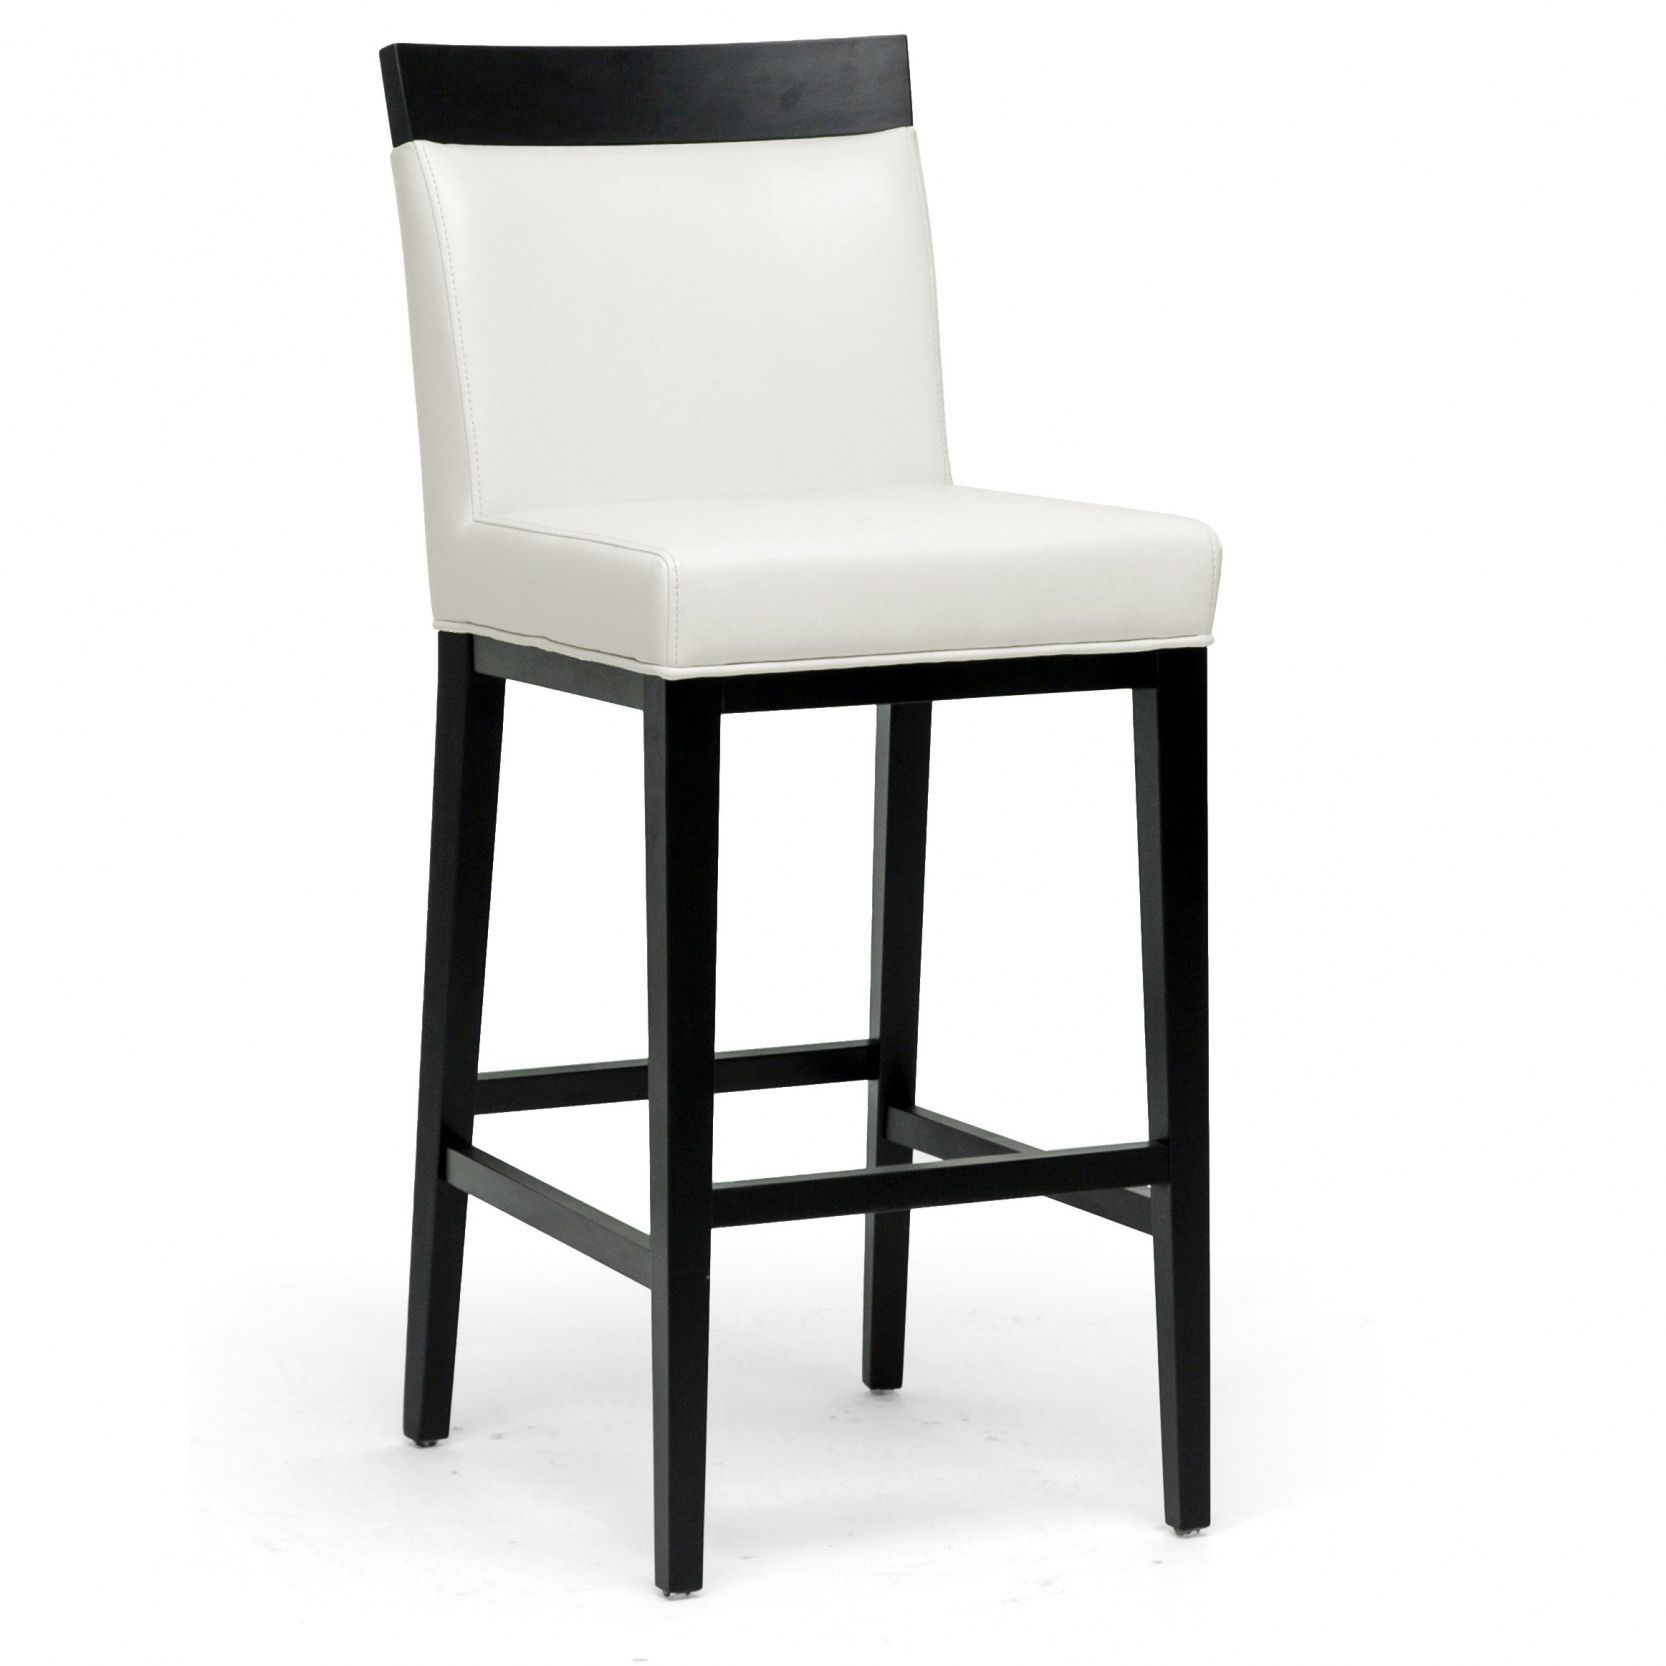 Unique White Leather Bar Stools with Back